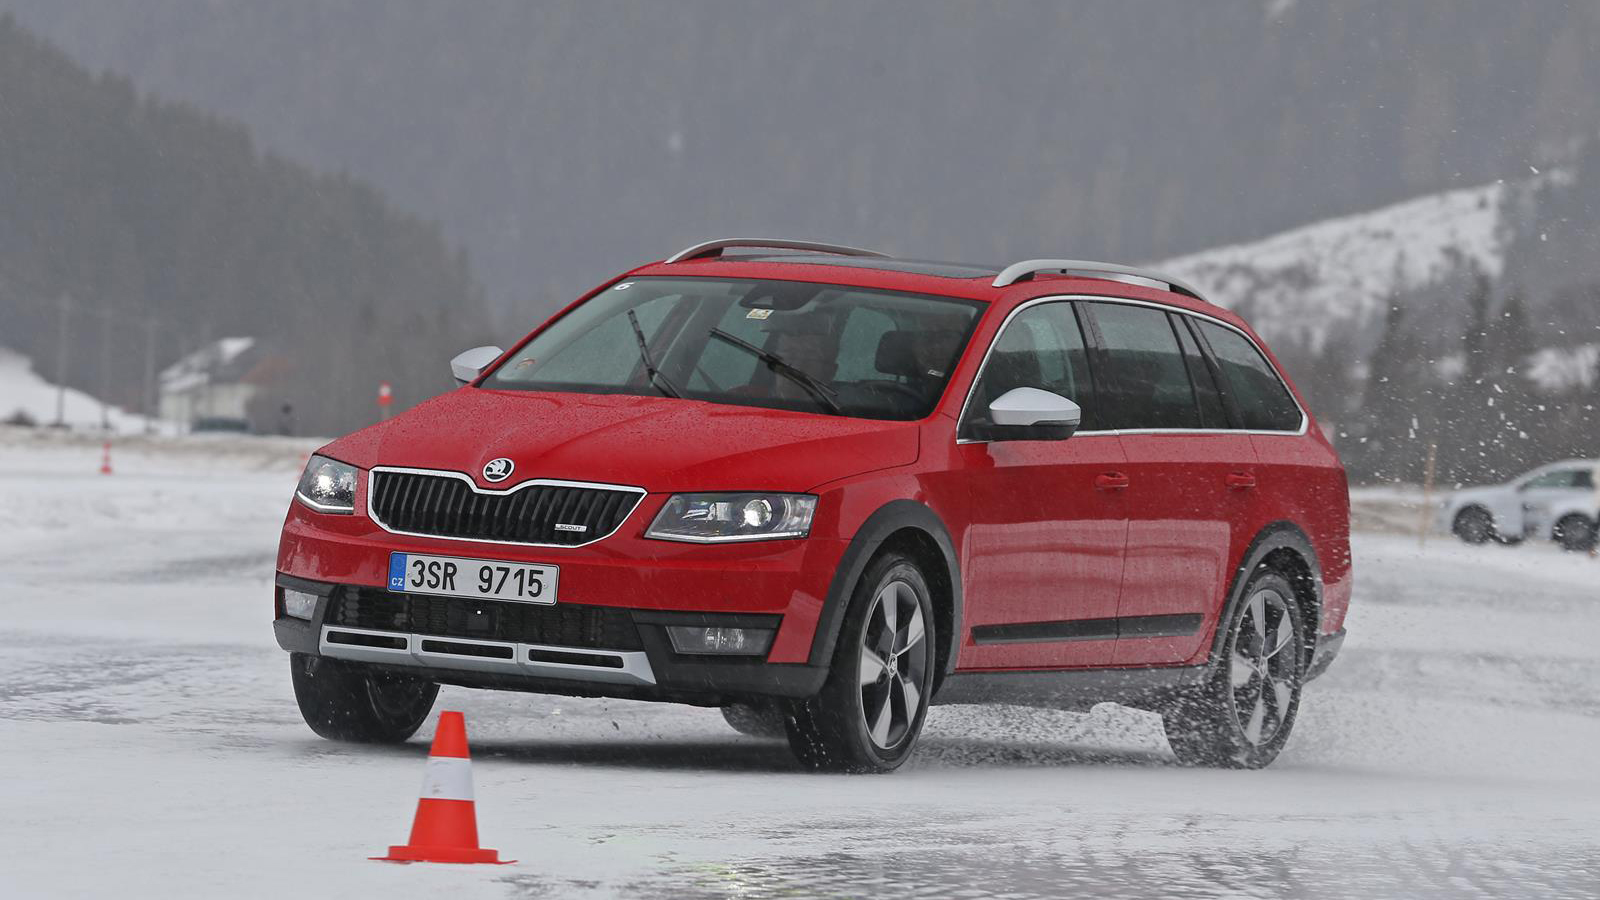 skoda octavia combi 4x4 octavia scout superb 4x4 superb html autos weblog. Black Bedroom Furniture Sets. Home Design Ideas